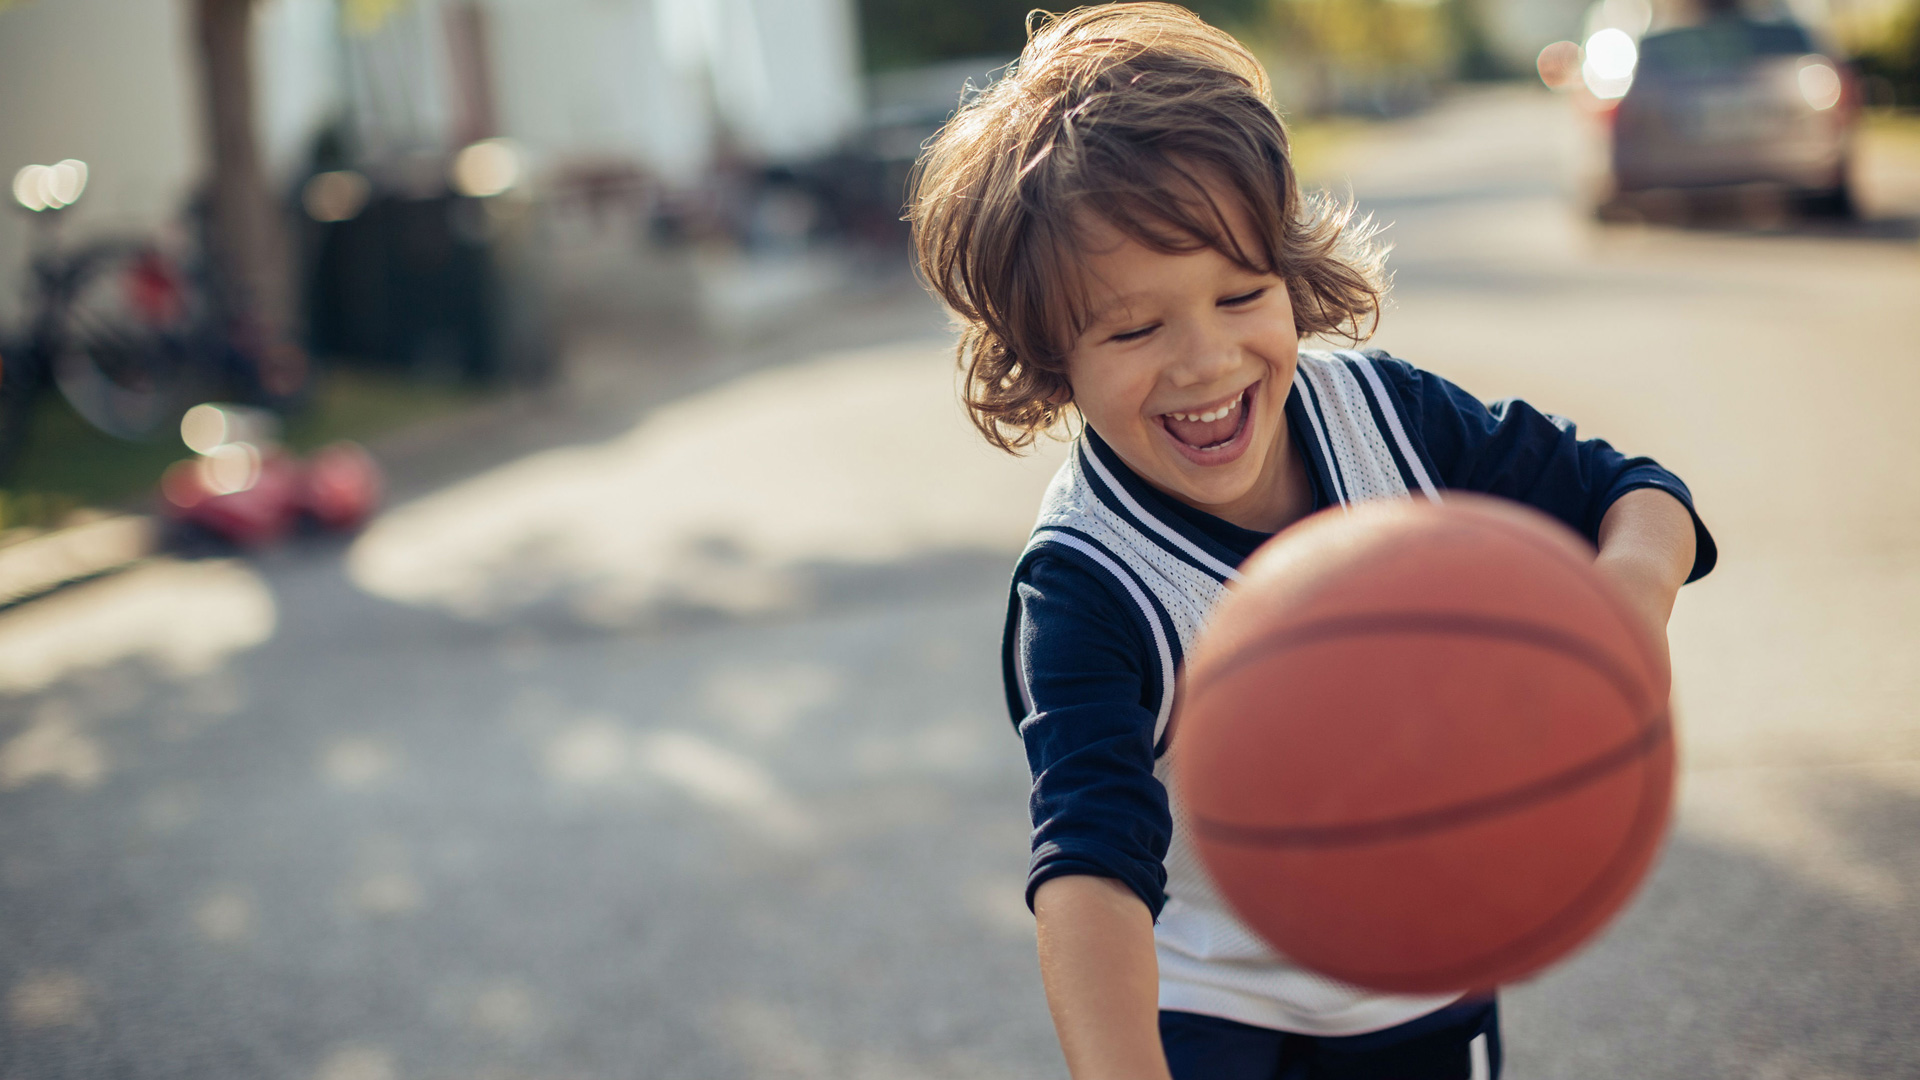 Boy-bouncing-basketball-outside